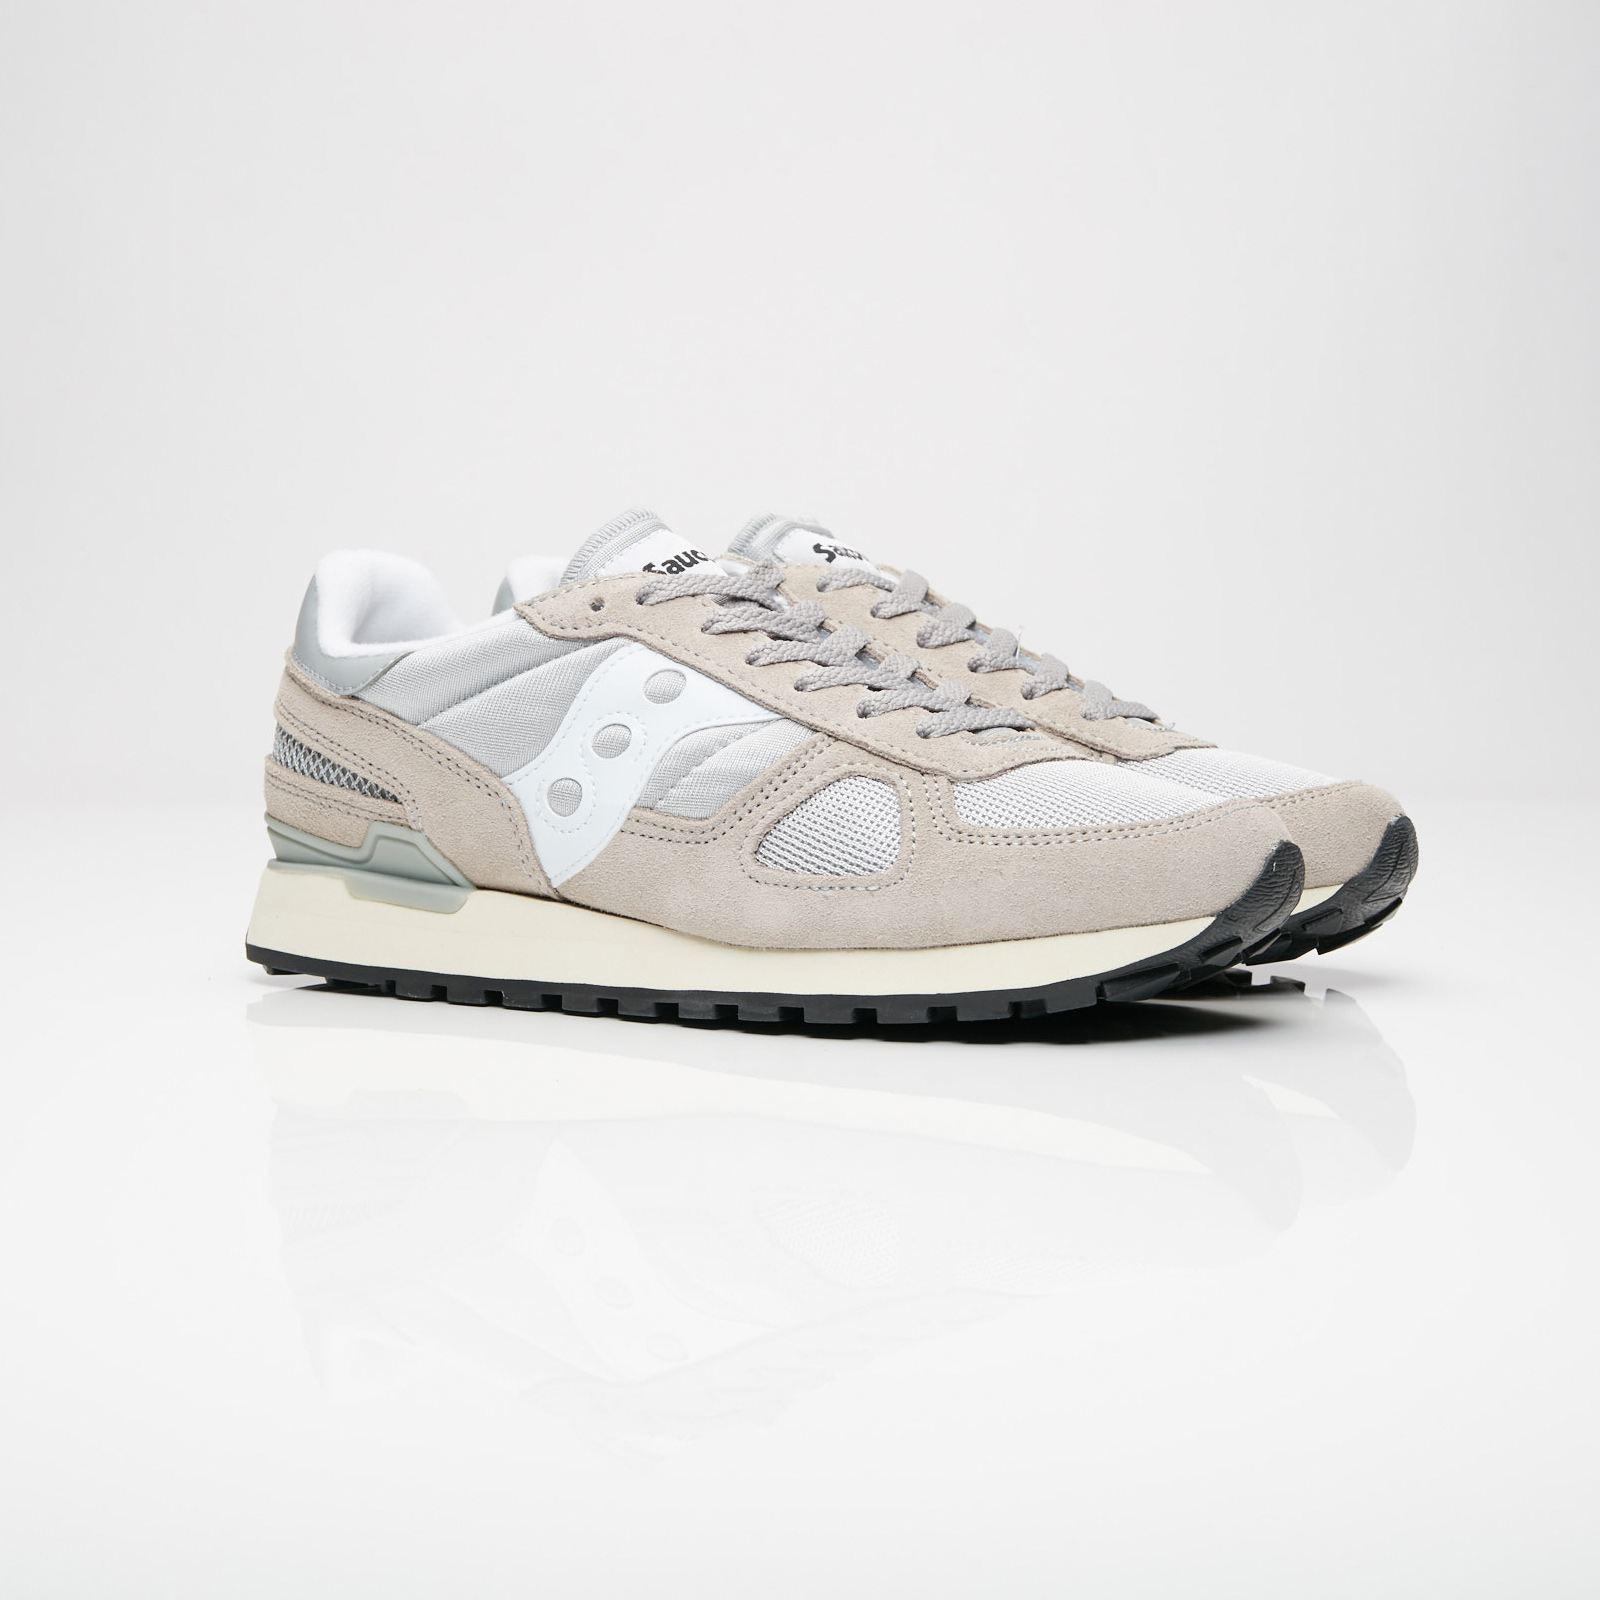 low priced 7507e 928b9 Saucony Shadow O Vintage - S70424-1 - Sneakersnstuff ...